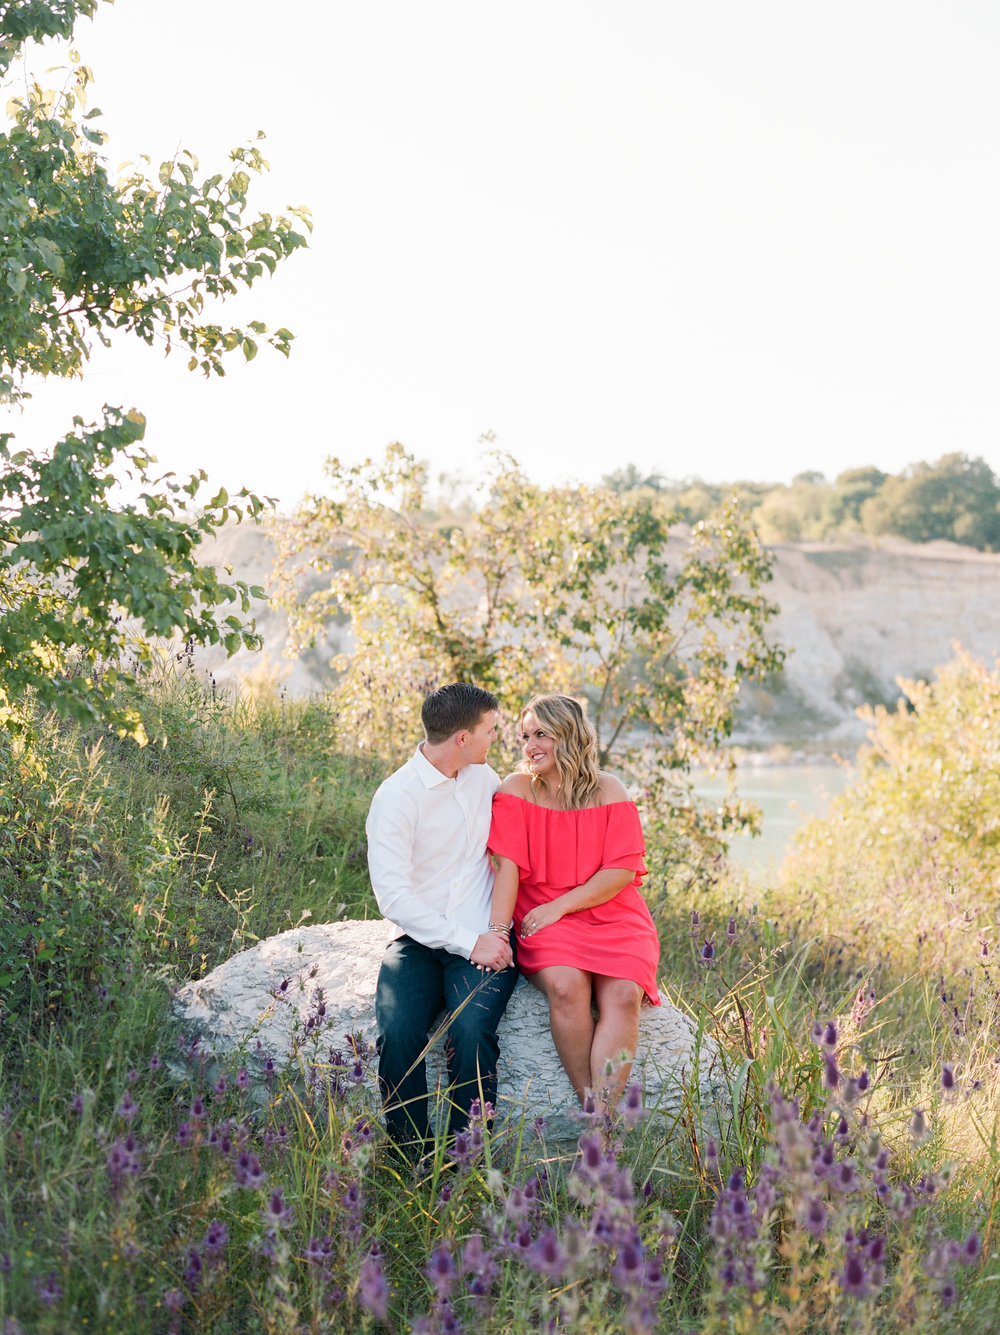 mckinney-quary-engagements-ar-photography-amanda-alex-86.jpg